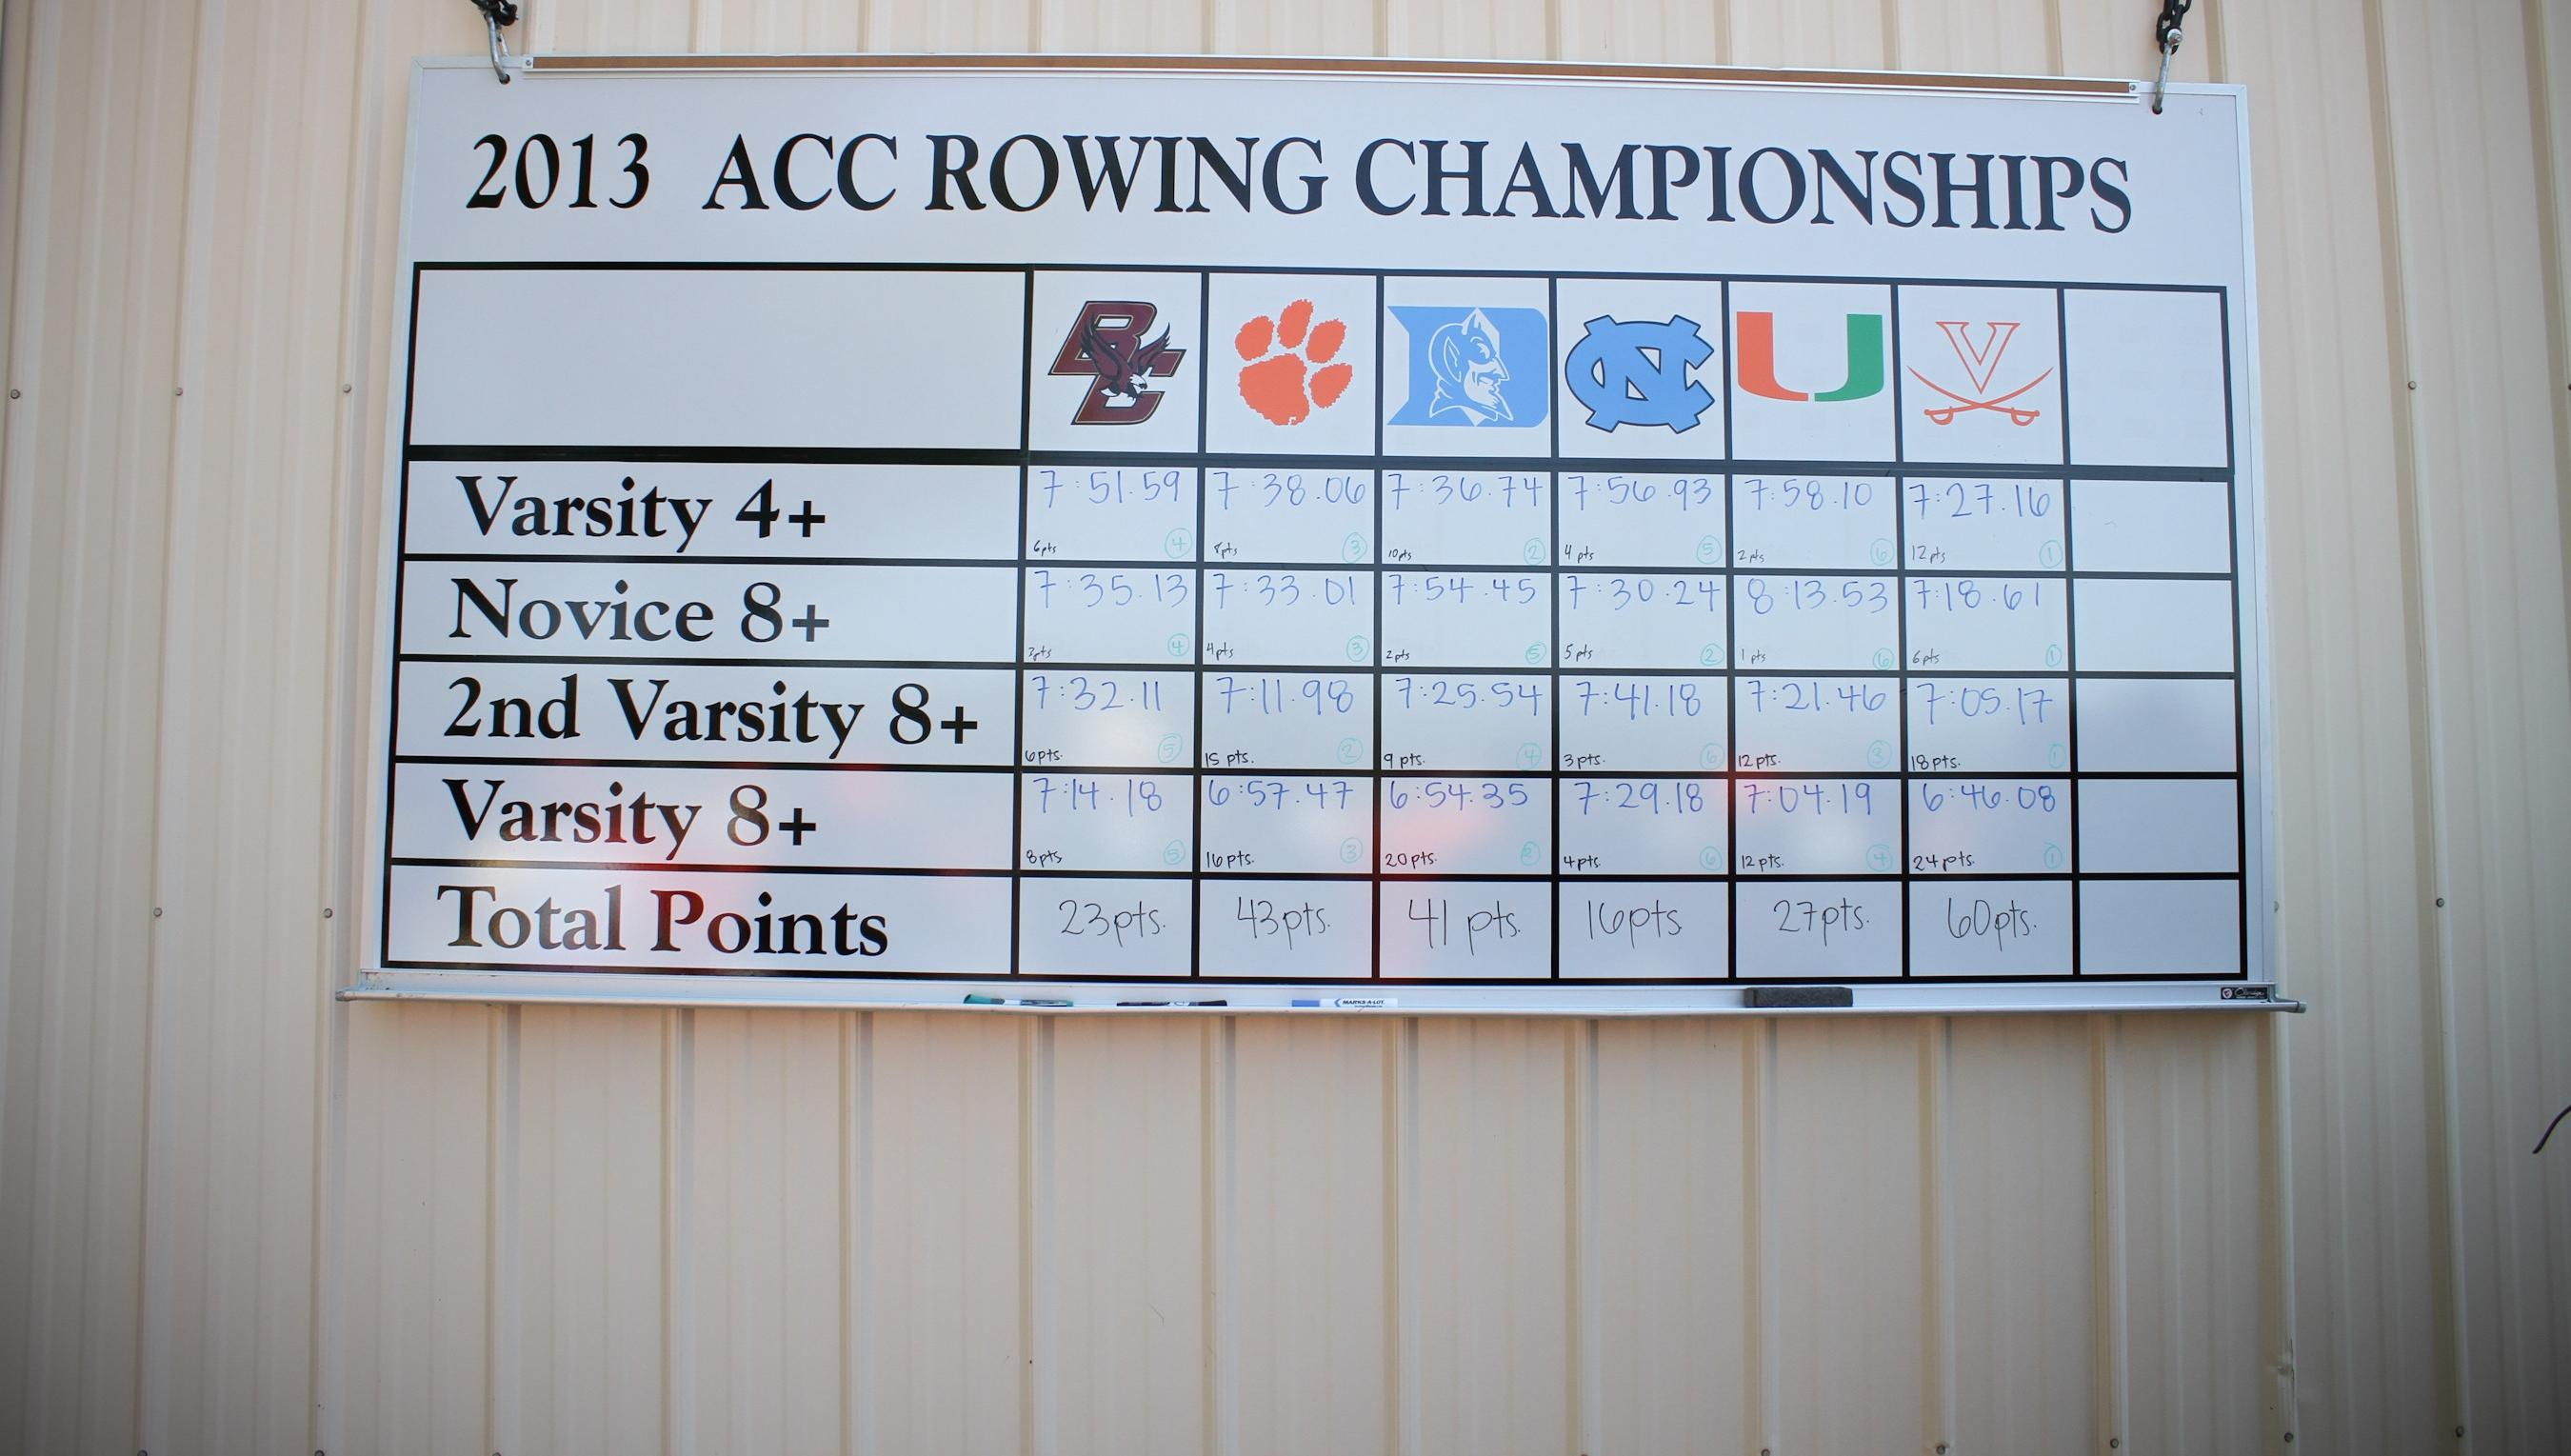 EXCLUSIVE: Rowers Take No Solace in Second-Place ACC finish